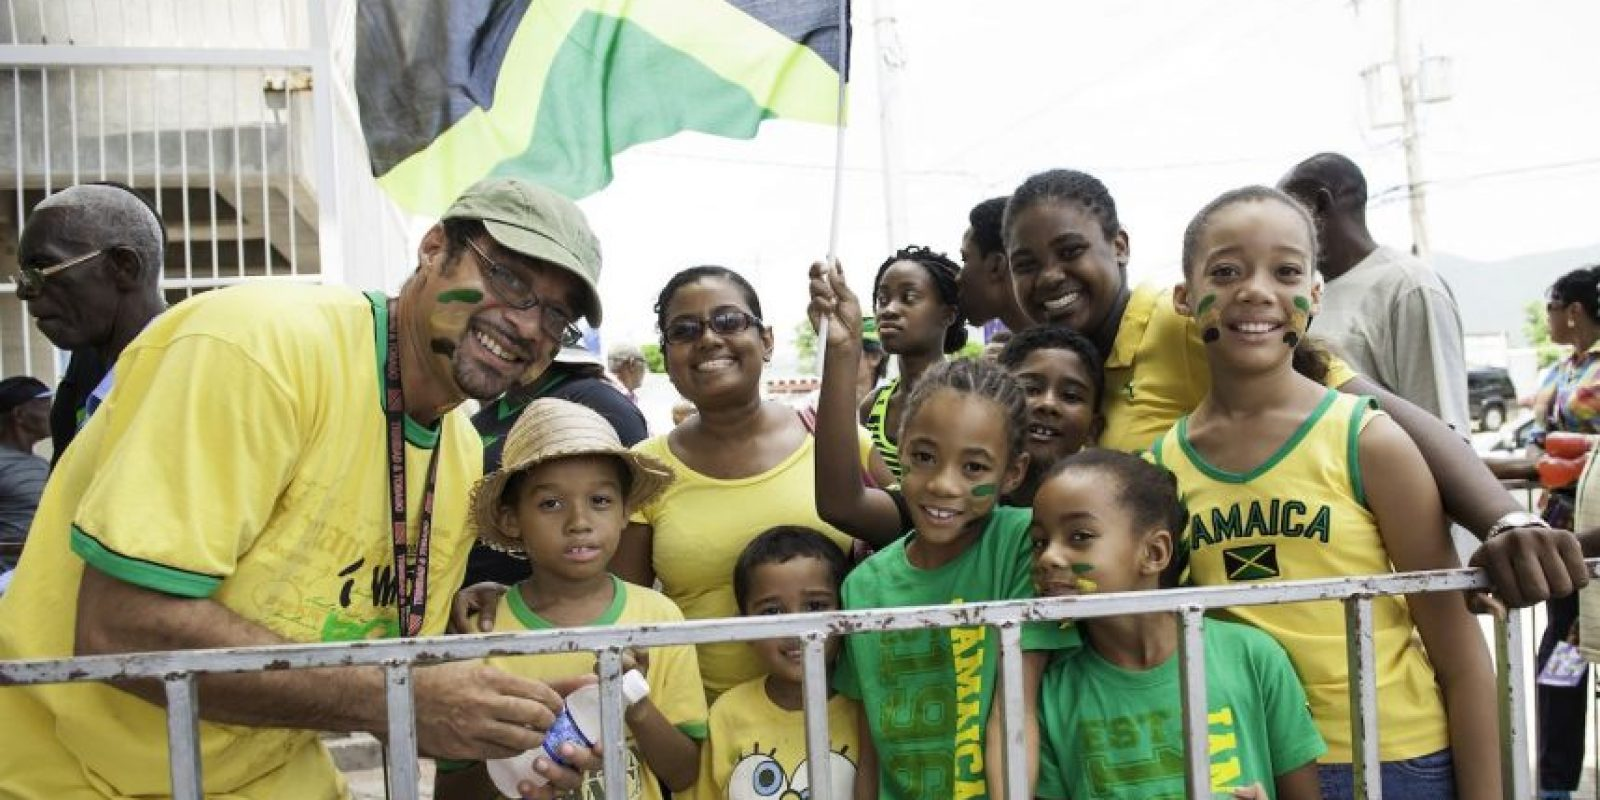 Jamaica Foto: Getty